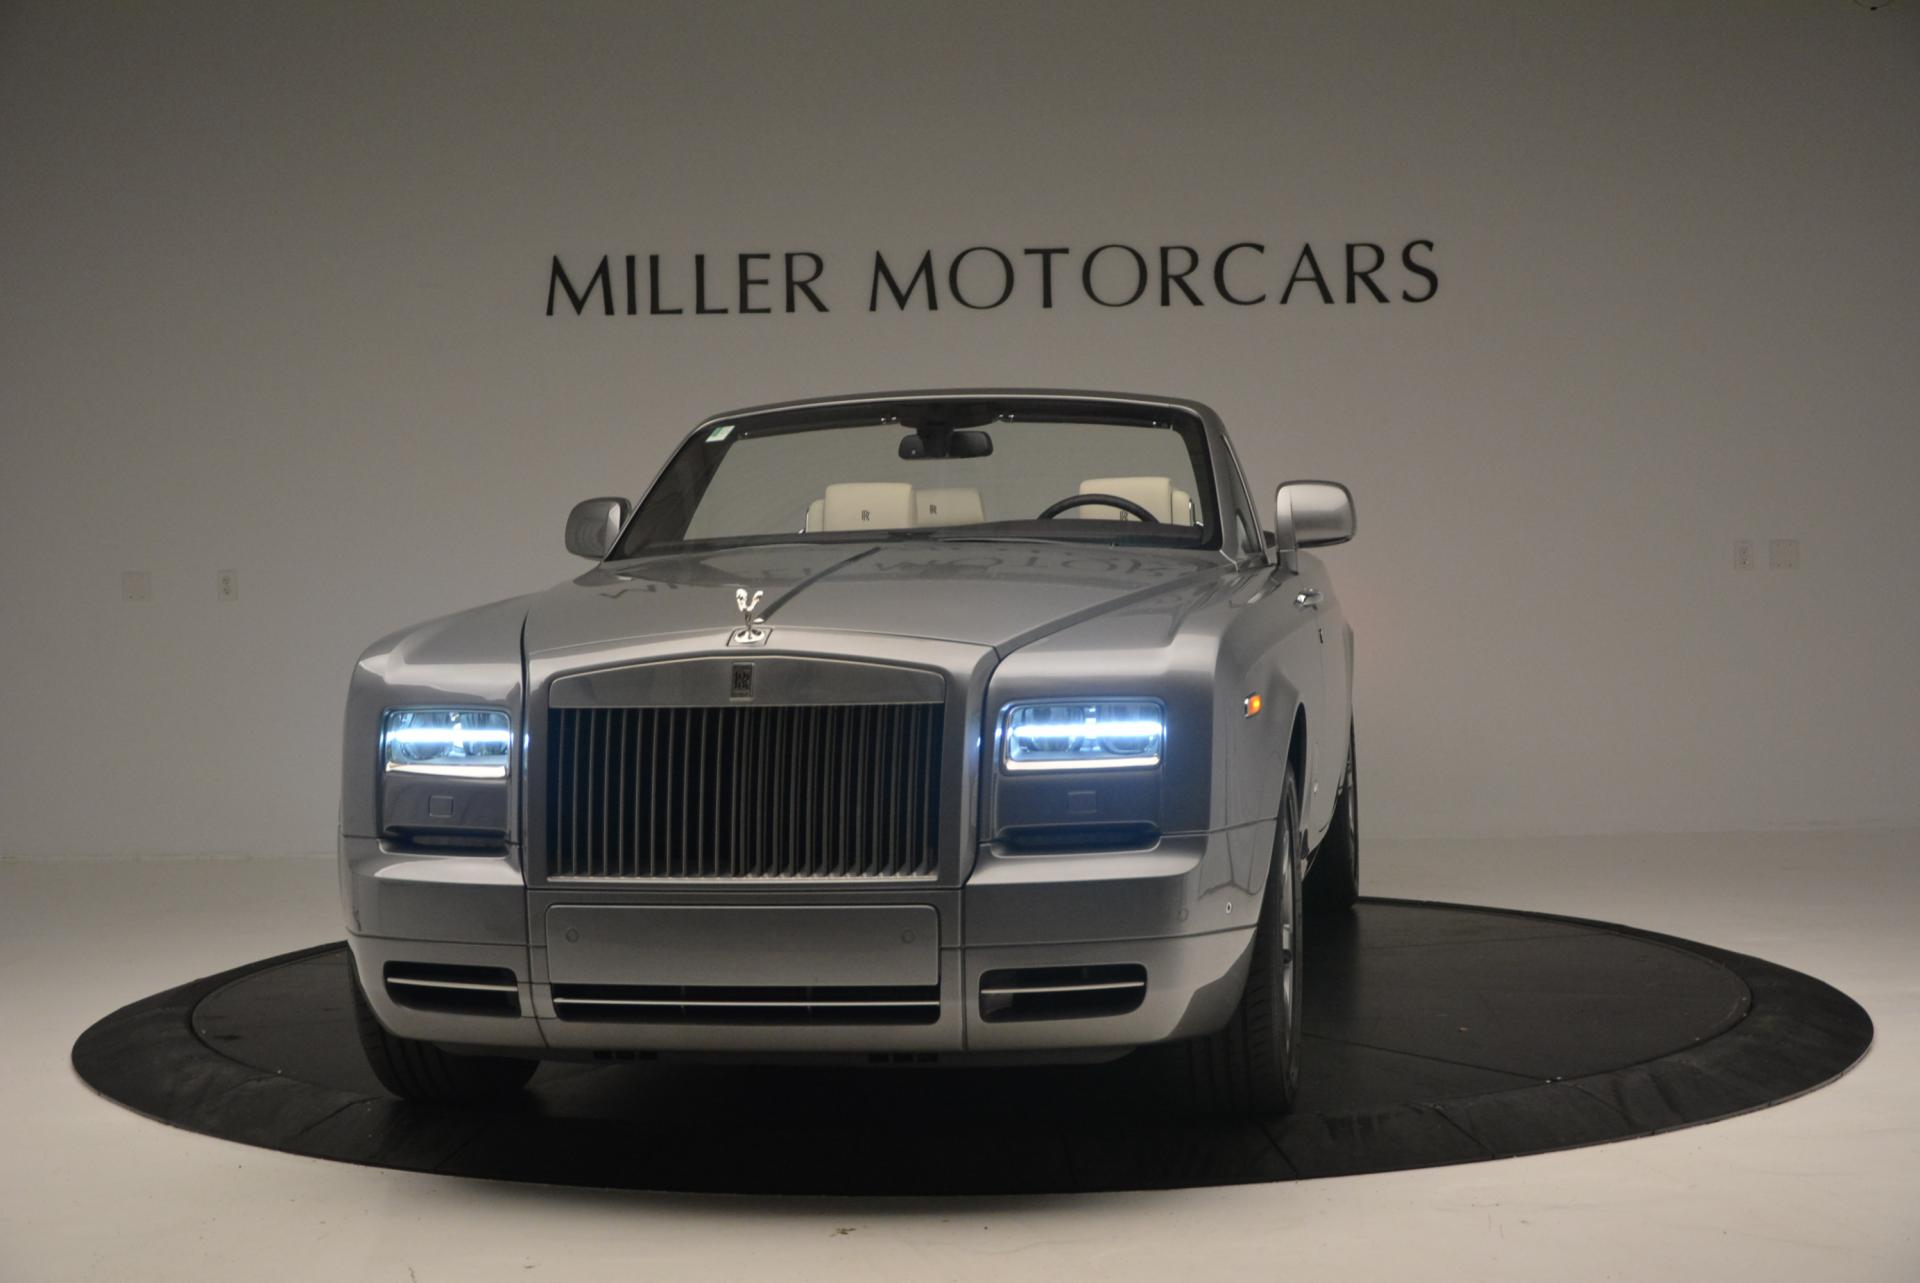 Used 2015 Rolls-Royce Phantom Drophead Coupe for sale Sold at Rolls-Royce Motor Cars Greenwich in Greenwich CT 06830 1